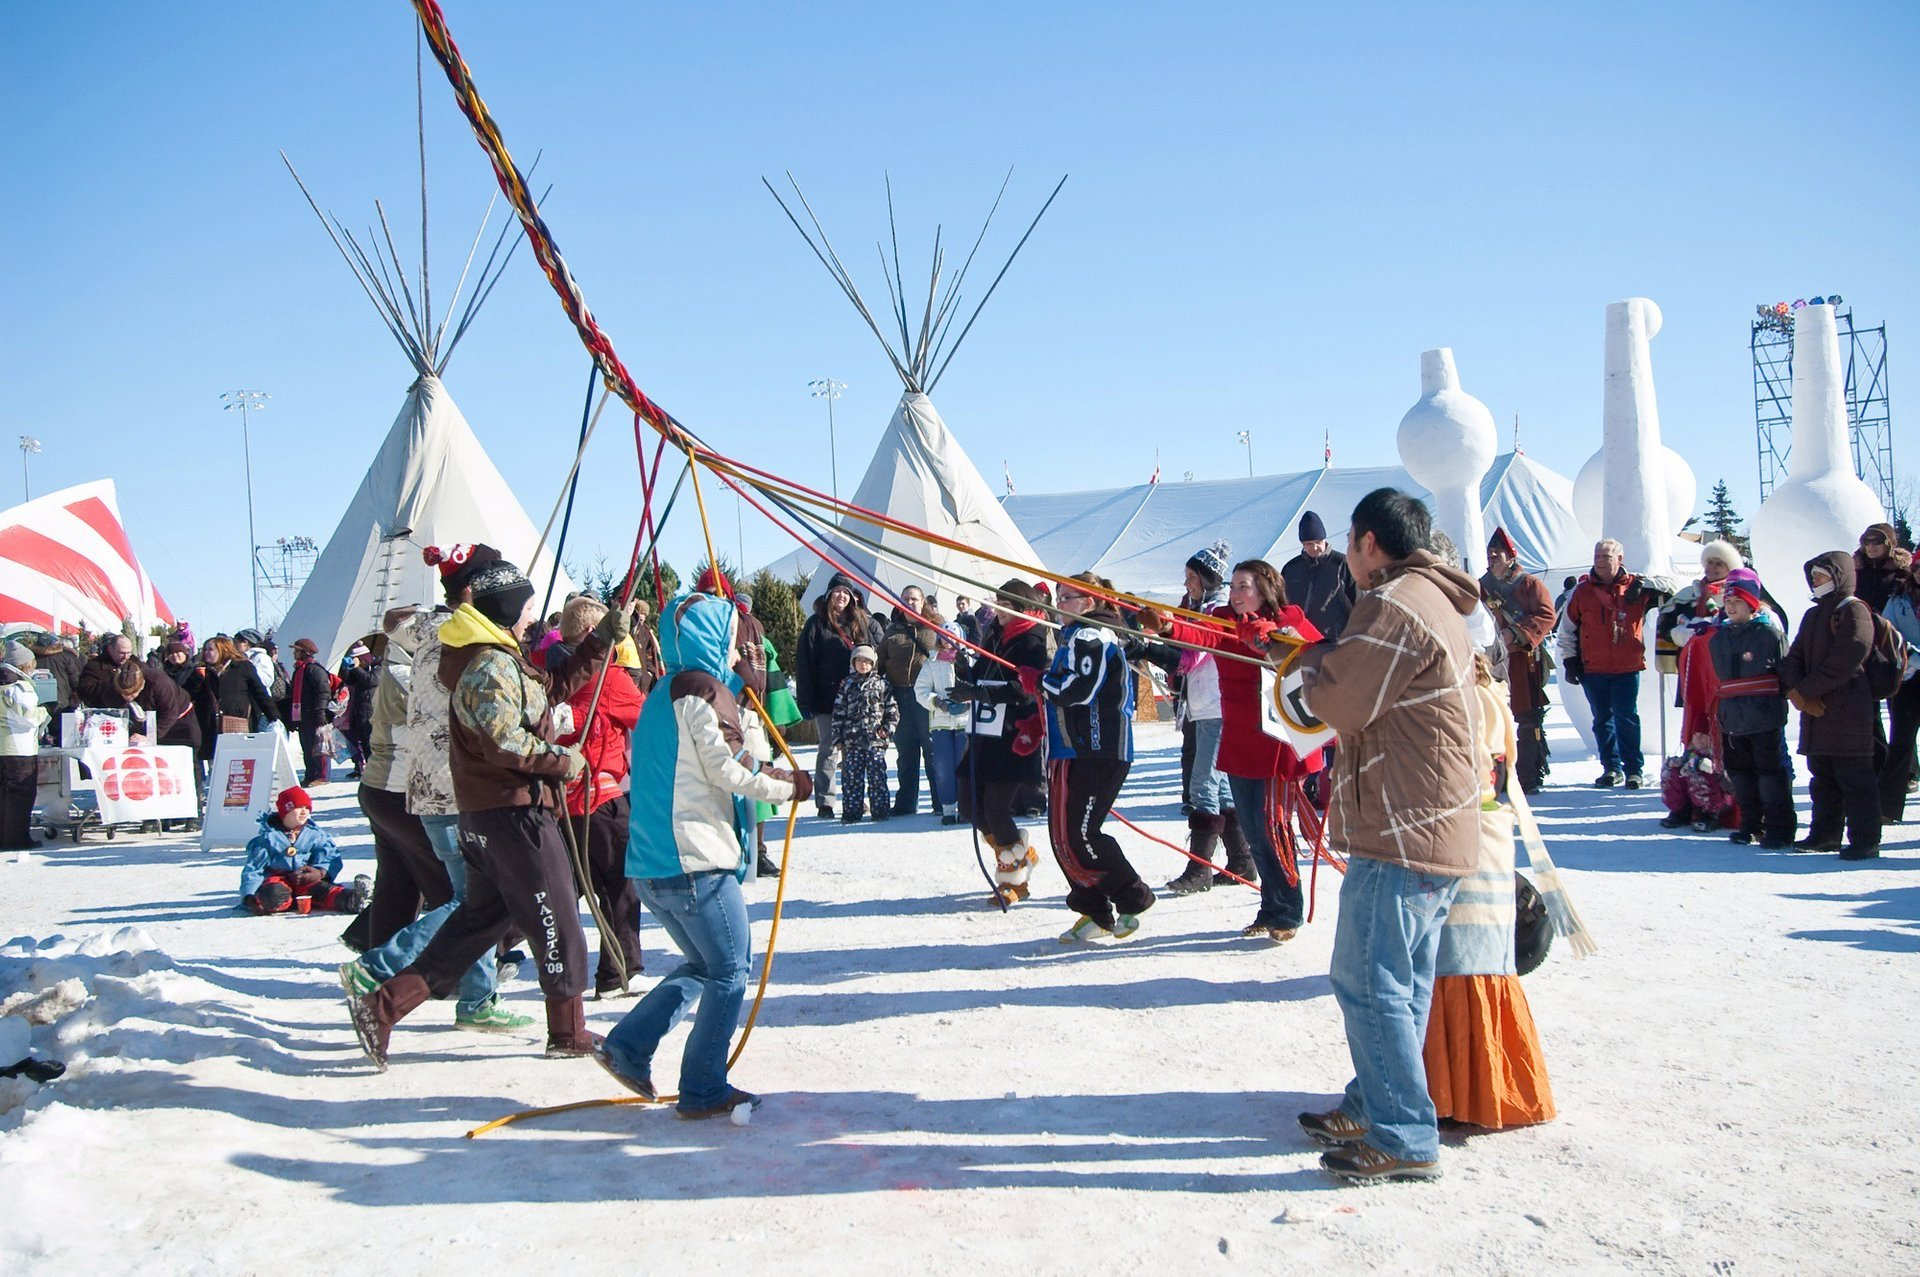 Festival du Voyageur in Winnipeg - Best Season 2020